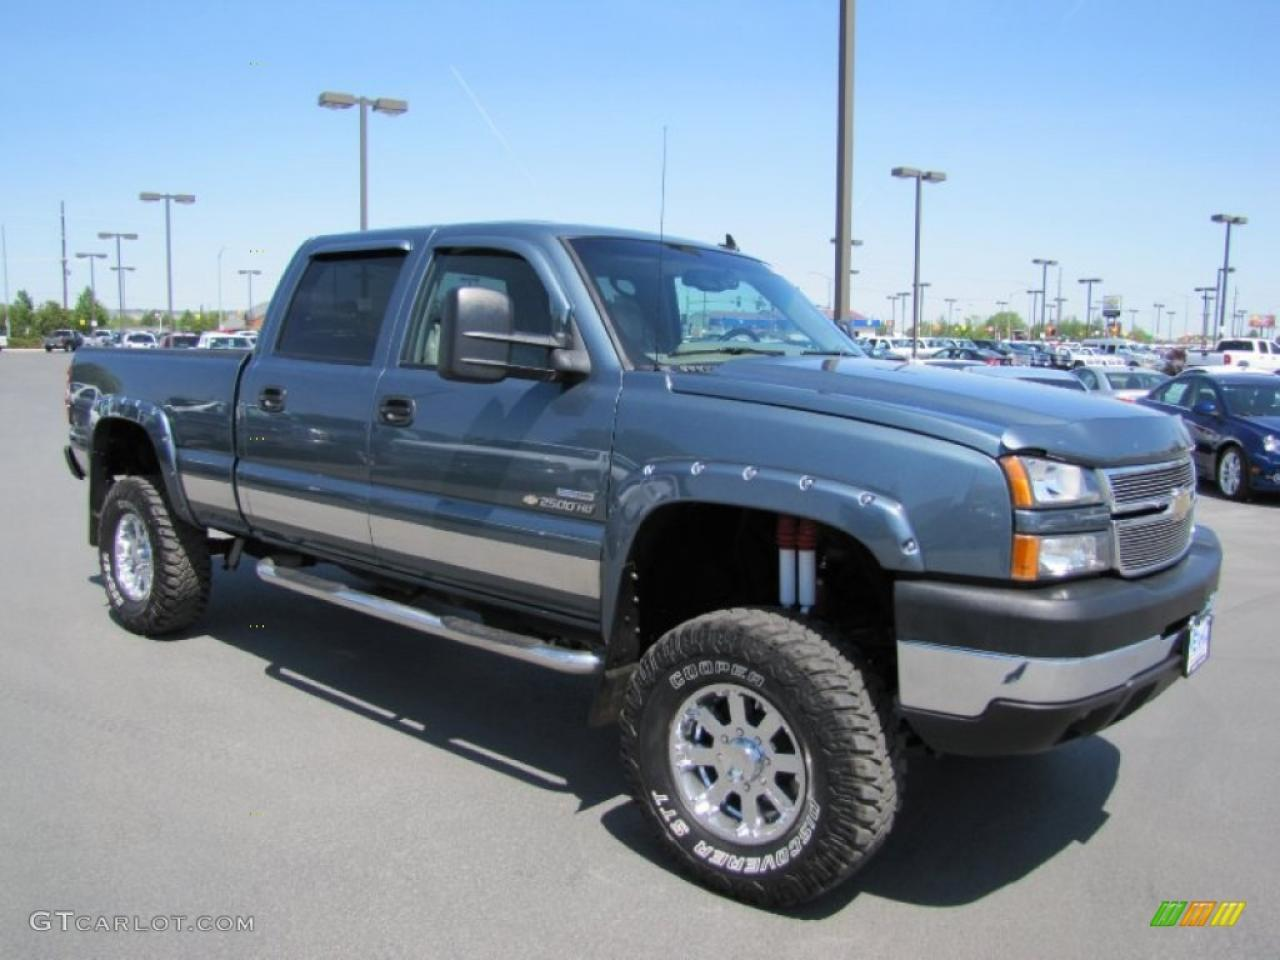 2007 chevrolet silverado 2500hd classic information and photos zombiedrive. Black Bedroom Furniture Sets. Home Design Ideas